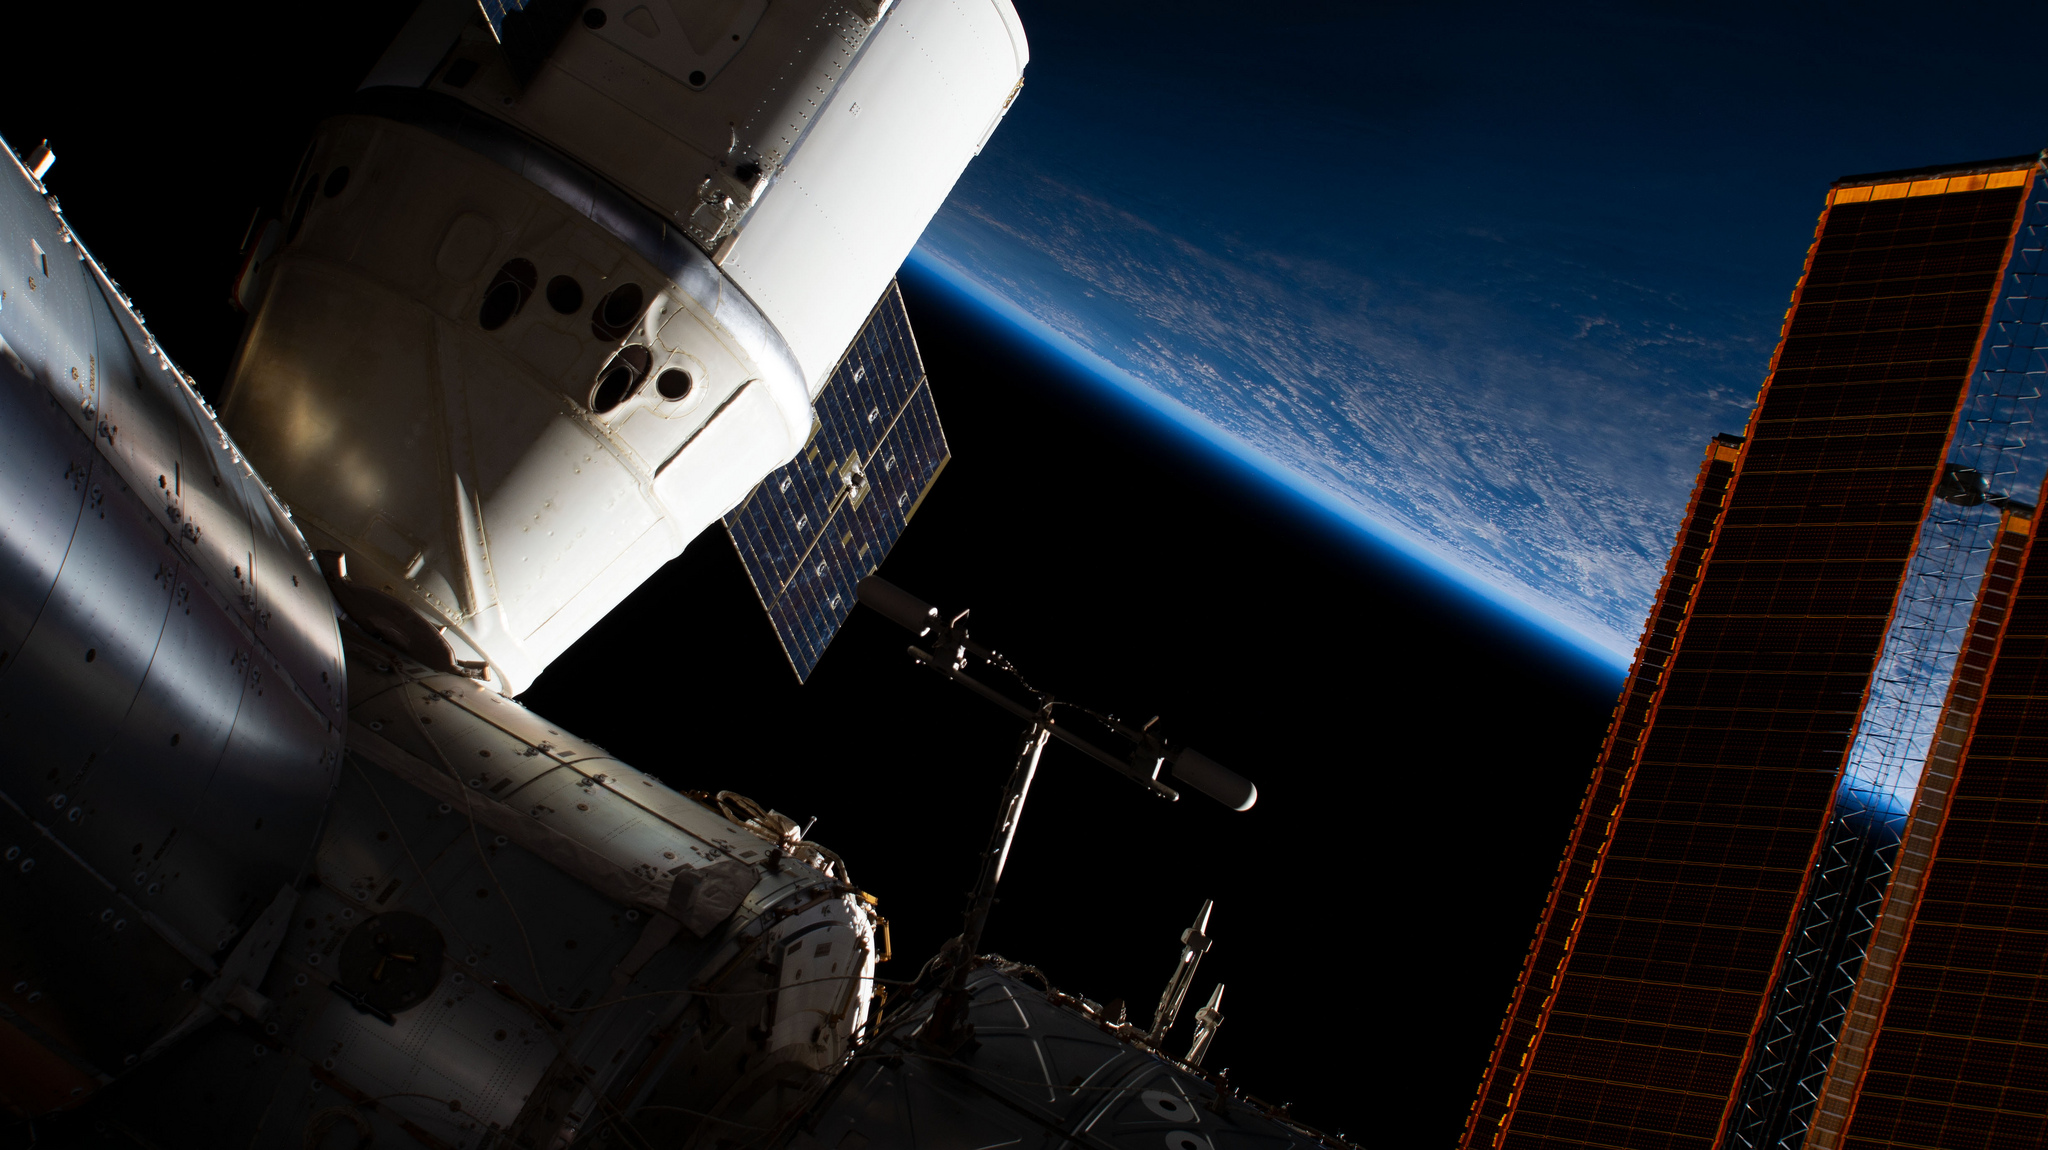 The CRS-16 Dragon as seen attached to the Earth-facing port of the Harmony module. Credit: NASA